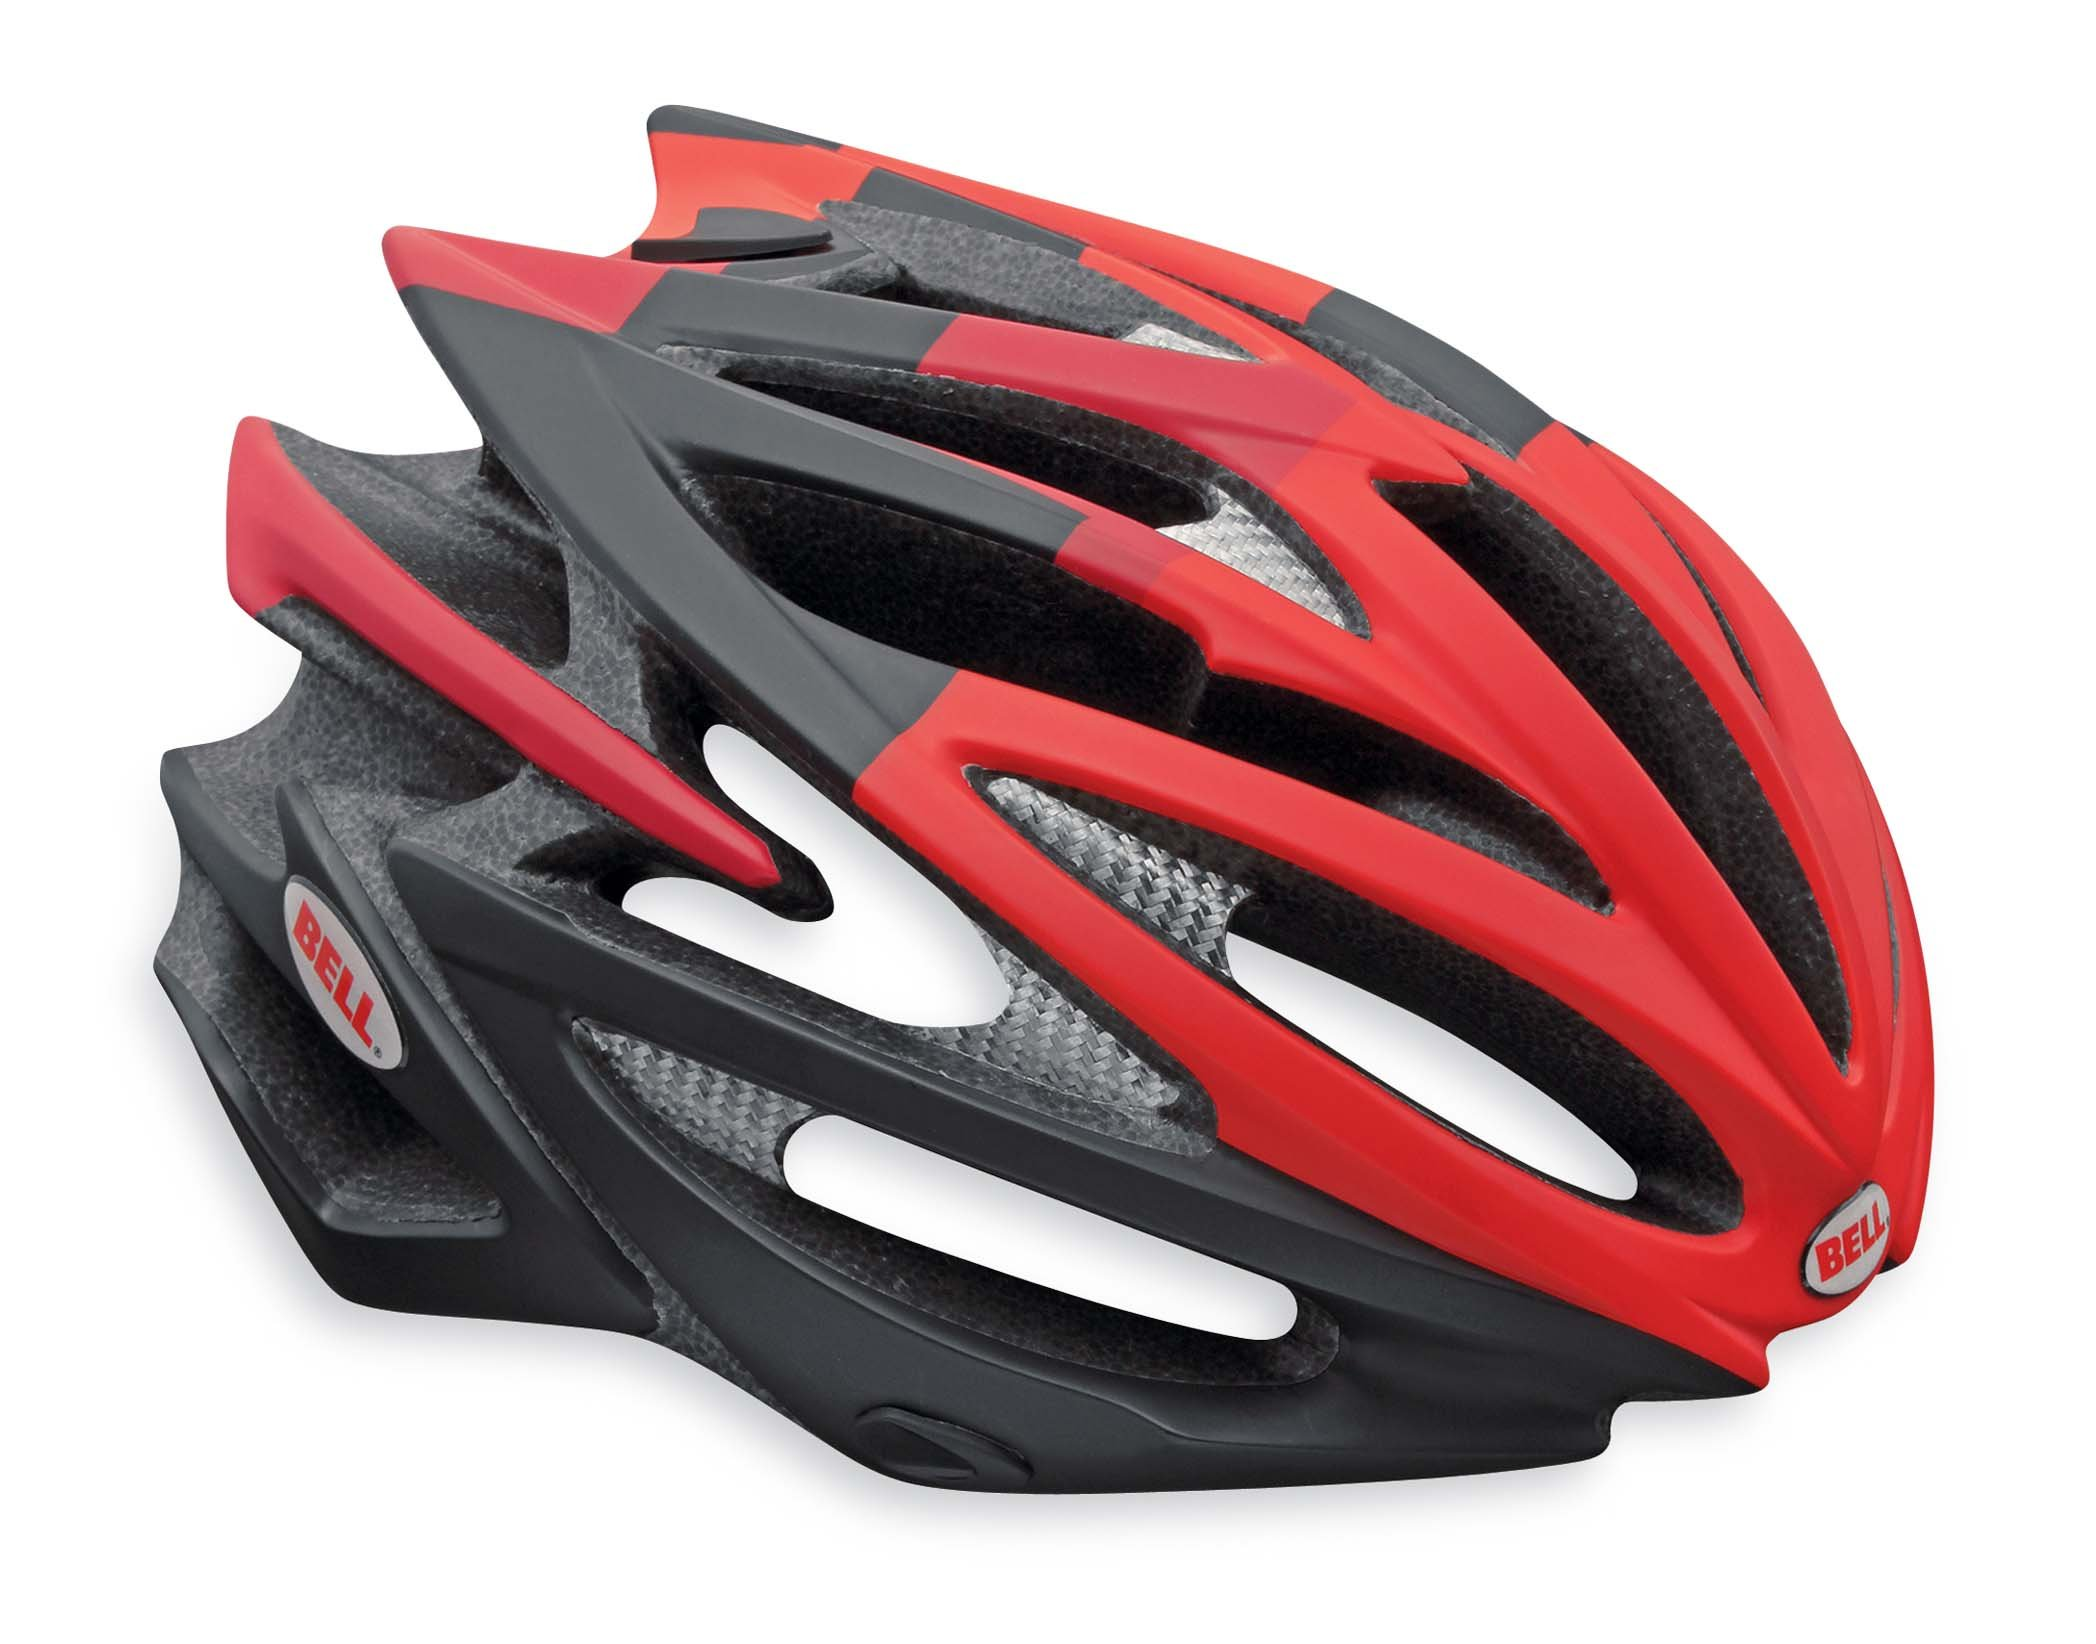 Bell Volt Racing Bicycle Helmet Matte Red/Black BMC Limited Edition Large (59 - 63cm / 23.25 - 24.75'') by Bell